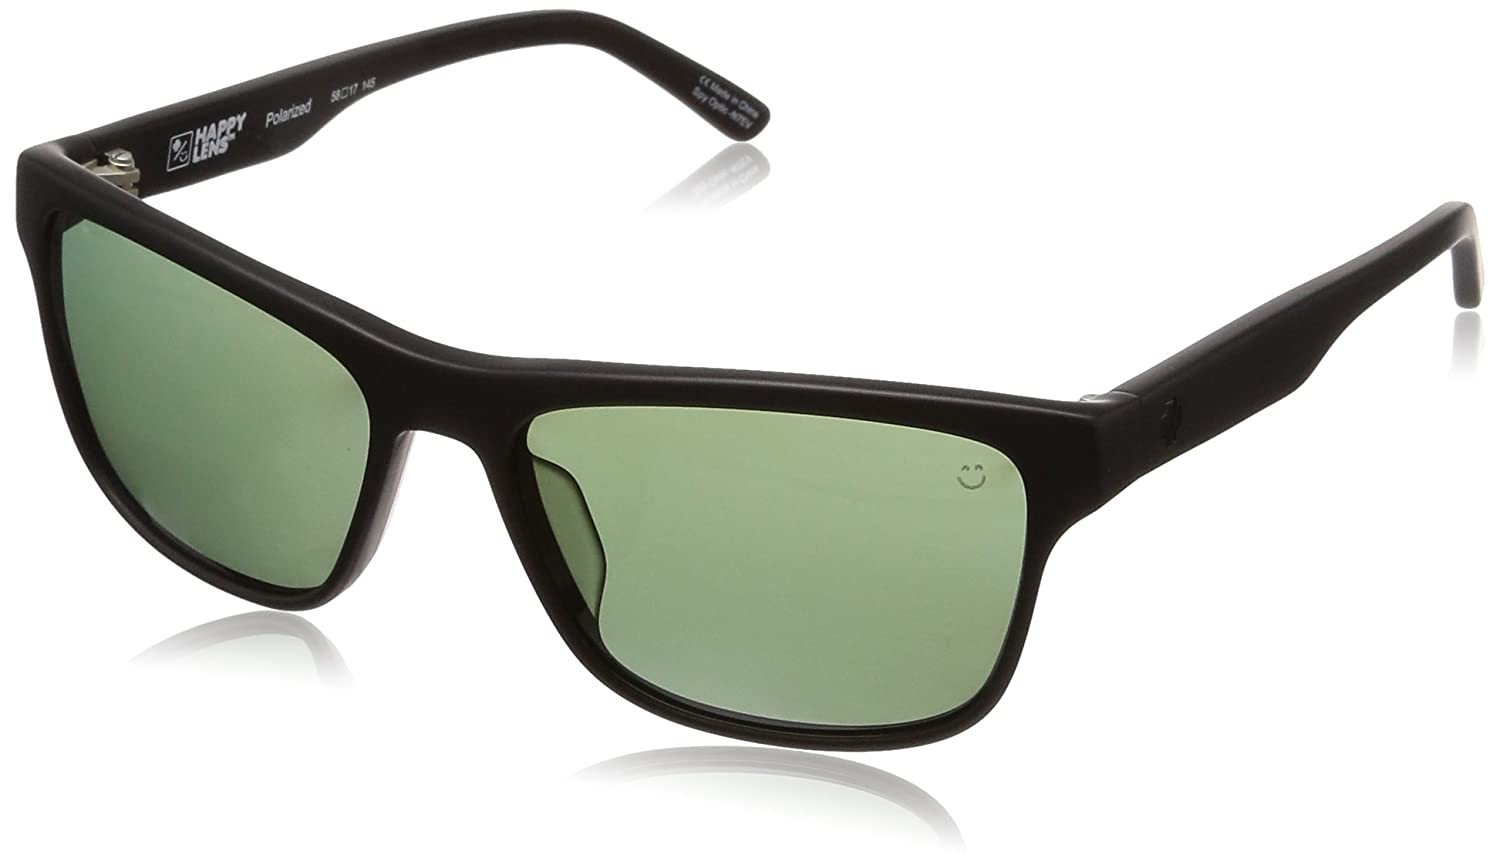 ff2435e4f0 SPY Optic Walden Sunglasses for Men and Women